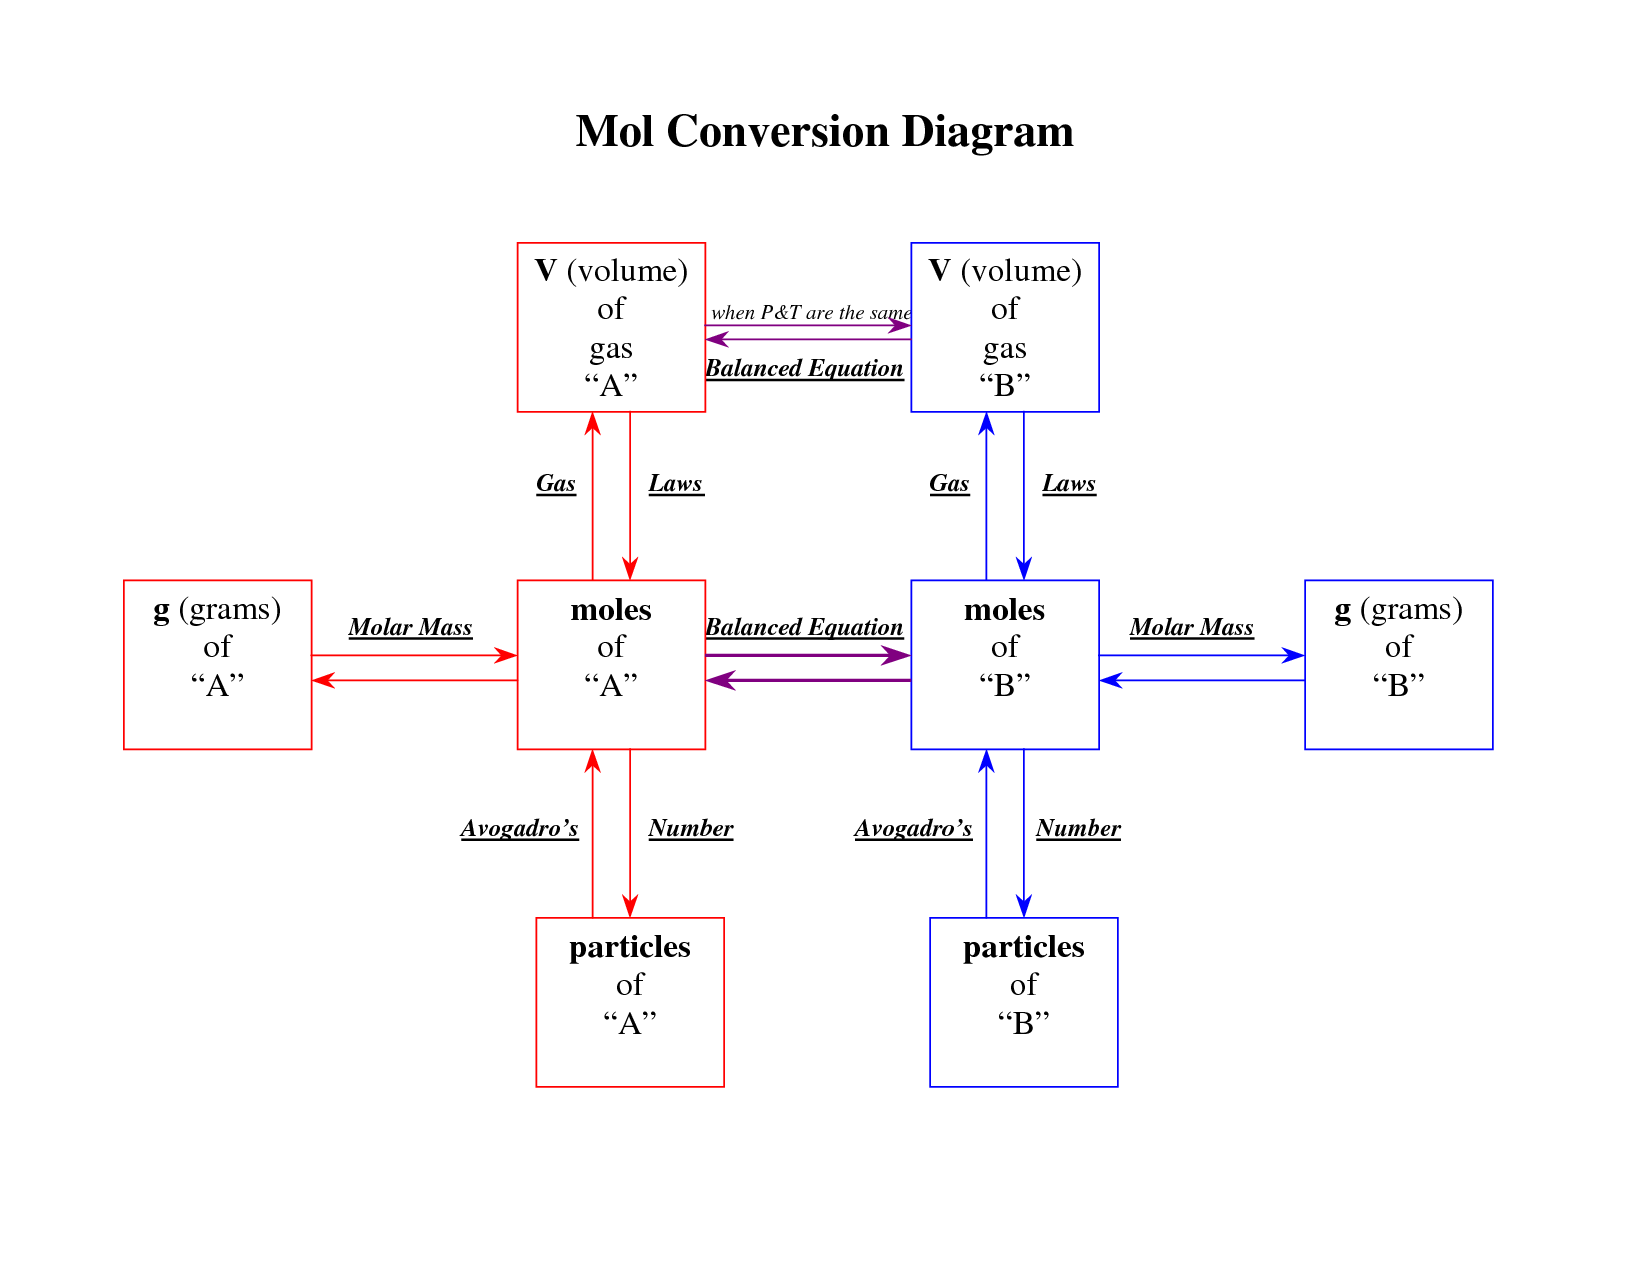 Cheat Sheet For Converting Between Moles And Grams And